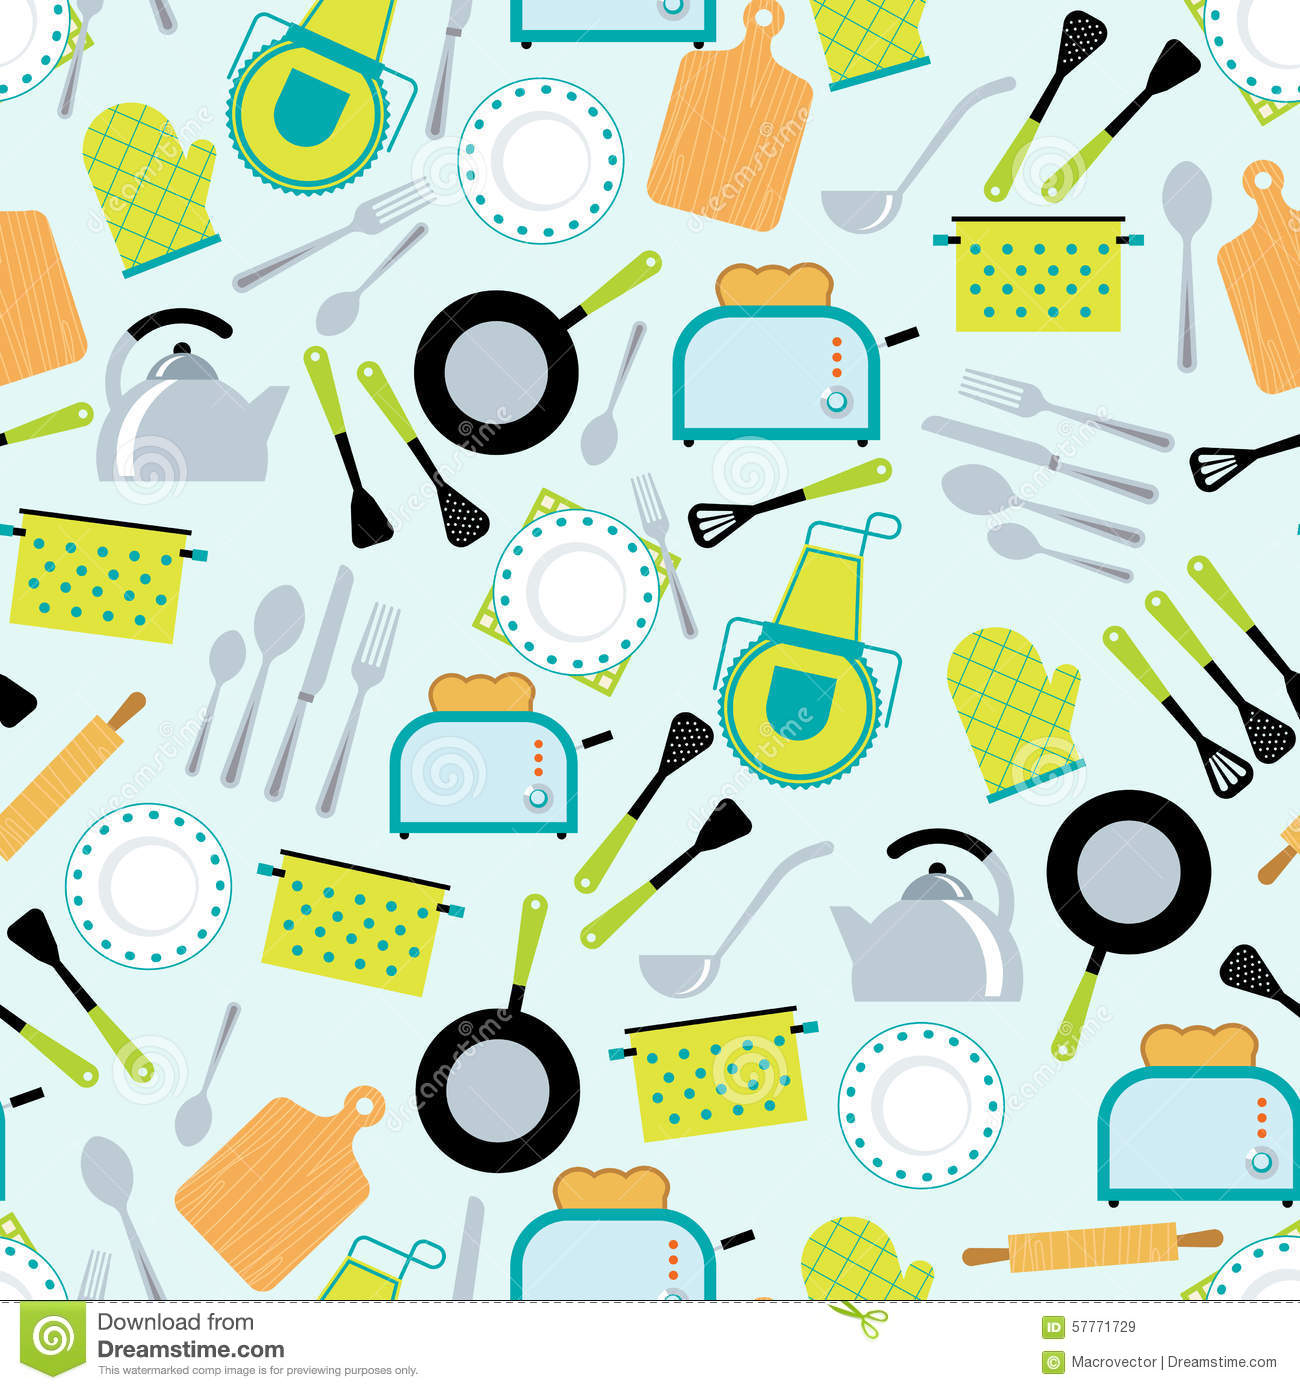 Kitchen Utensils Wallpaper cooking accessories seamless pattern stock vector - image: 57771729